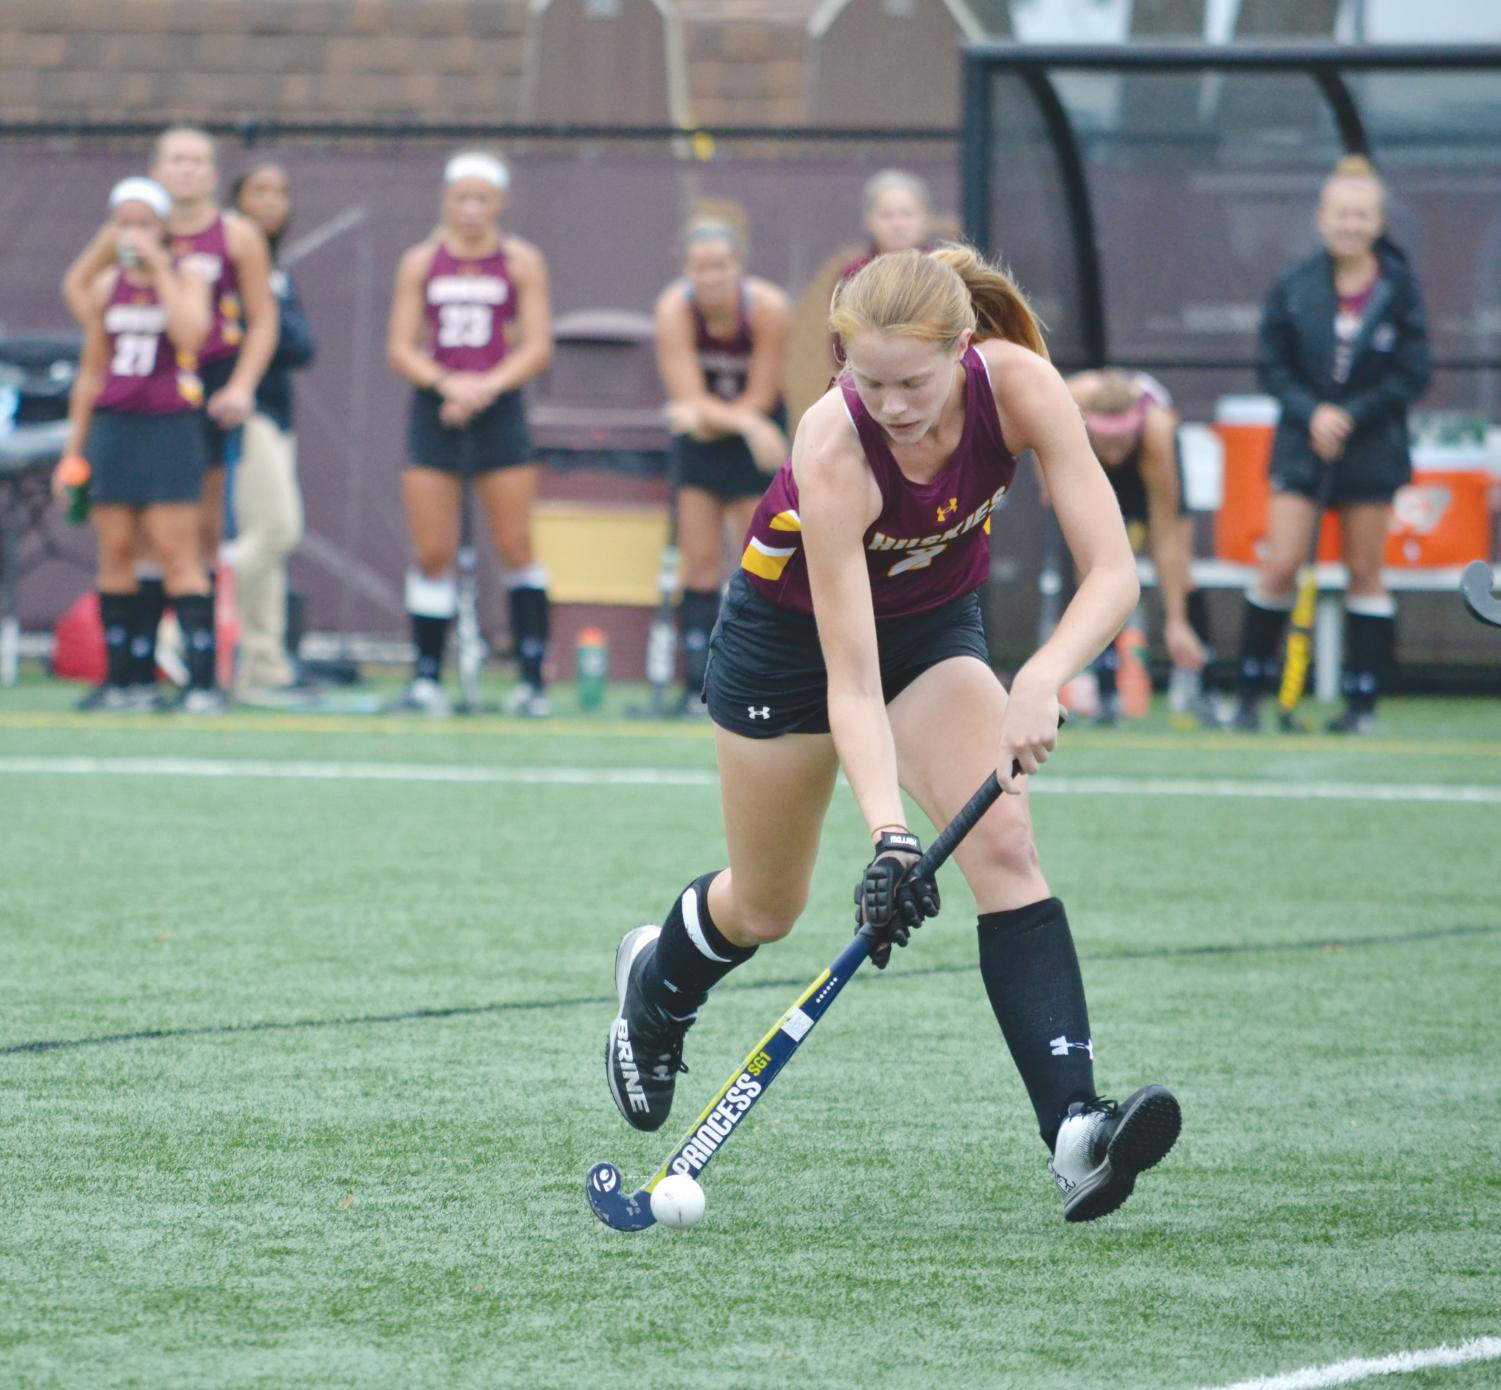 The Bloomsburg University Field Hockey team is ranked #9 in the nation heading into 2019, according to the Division II National preseason coaches poll.